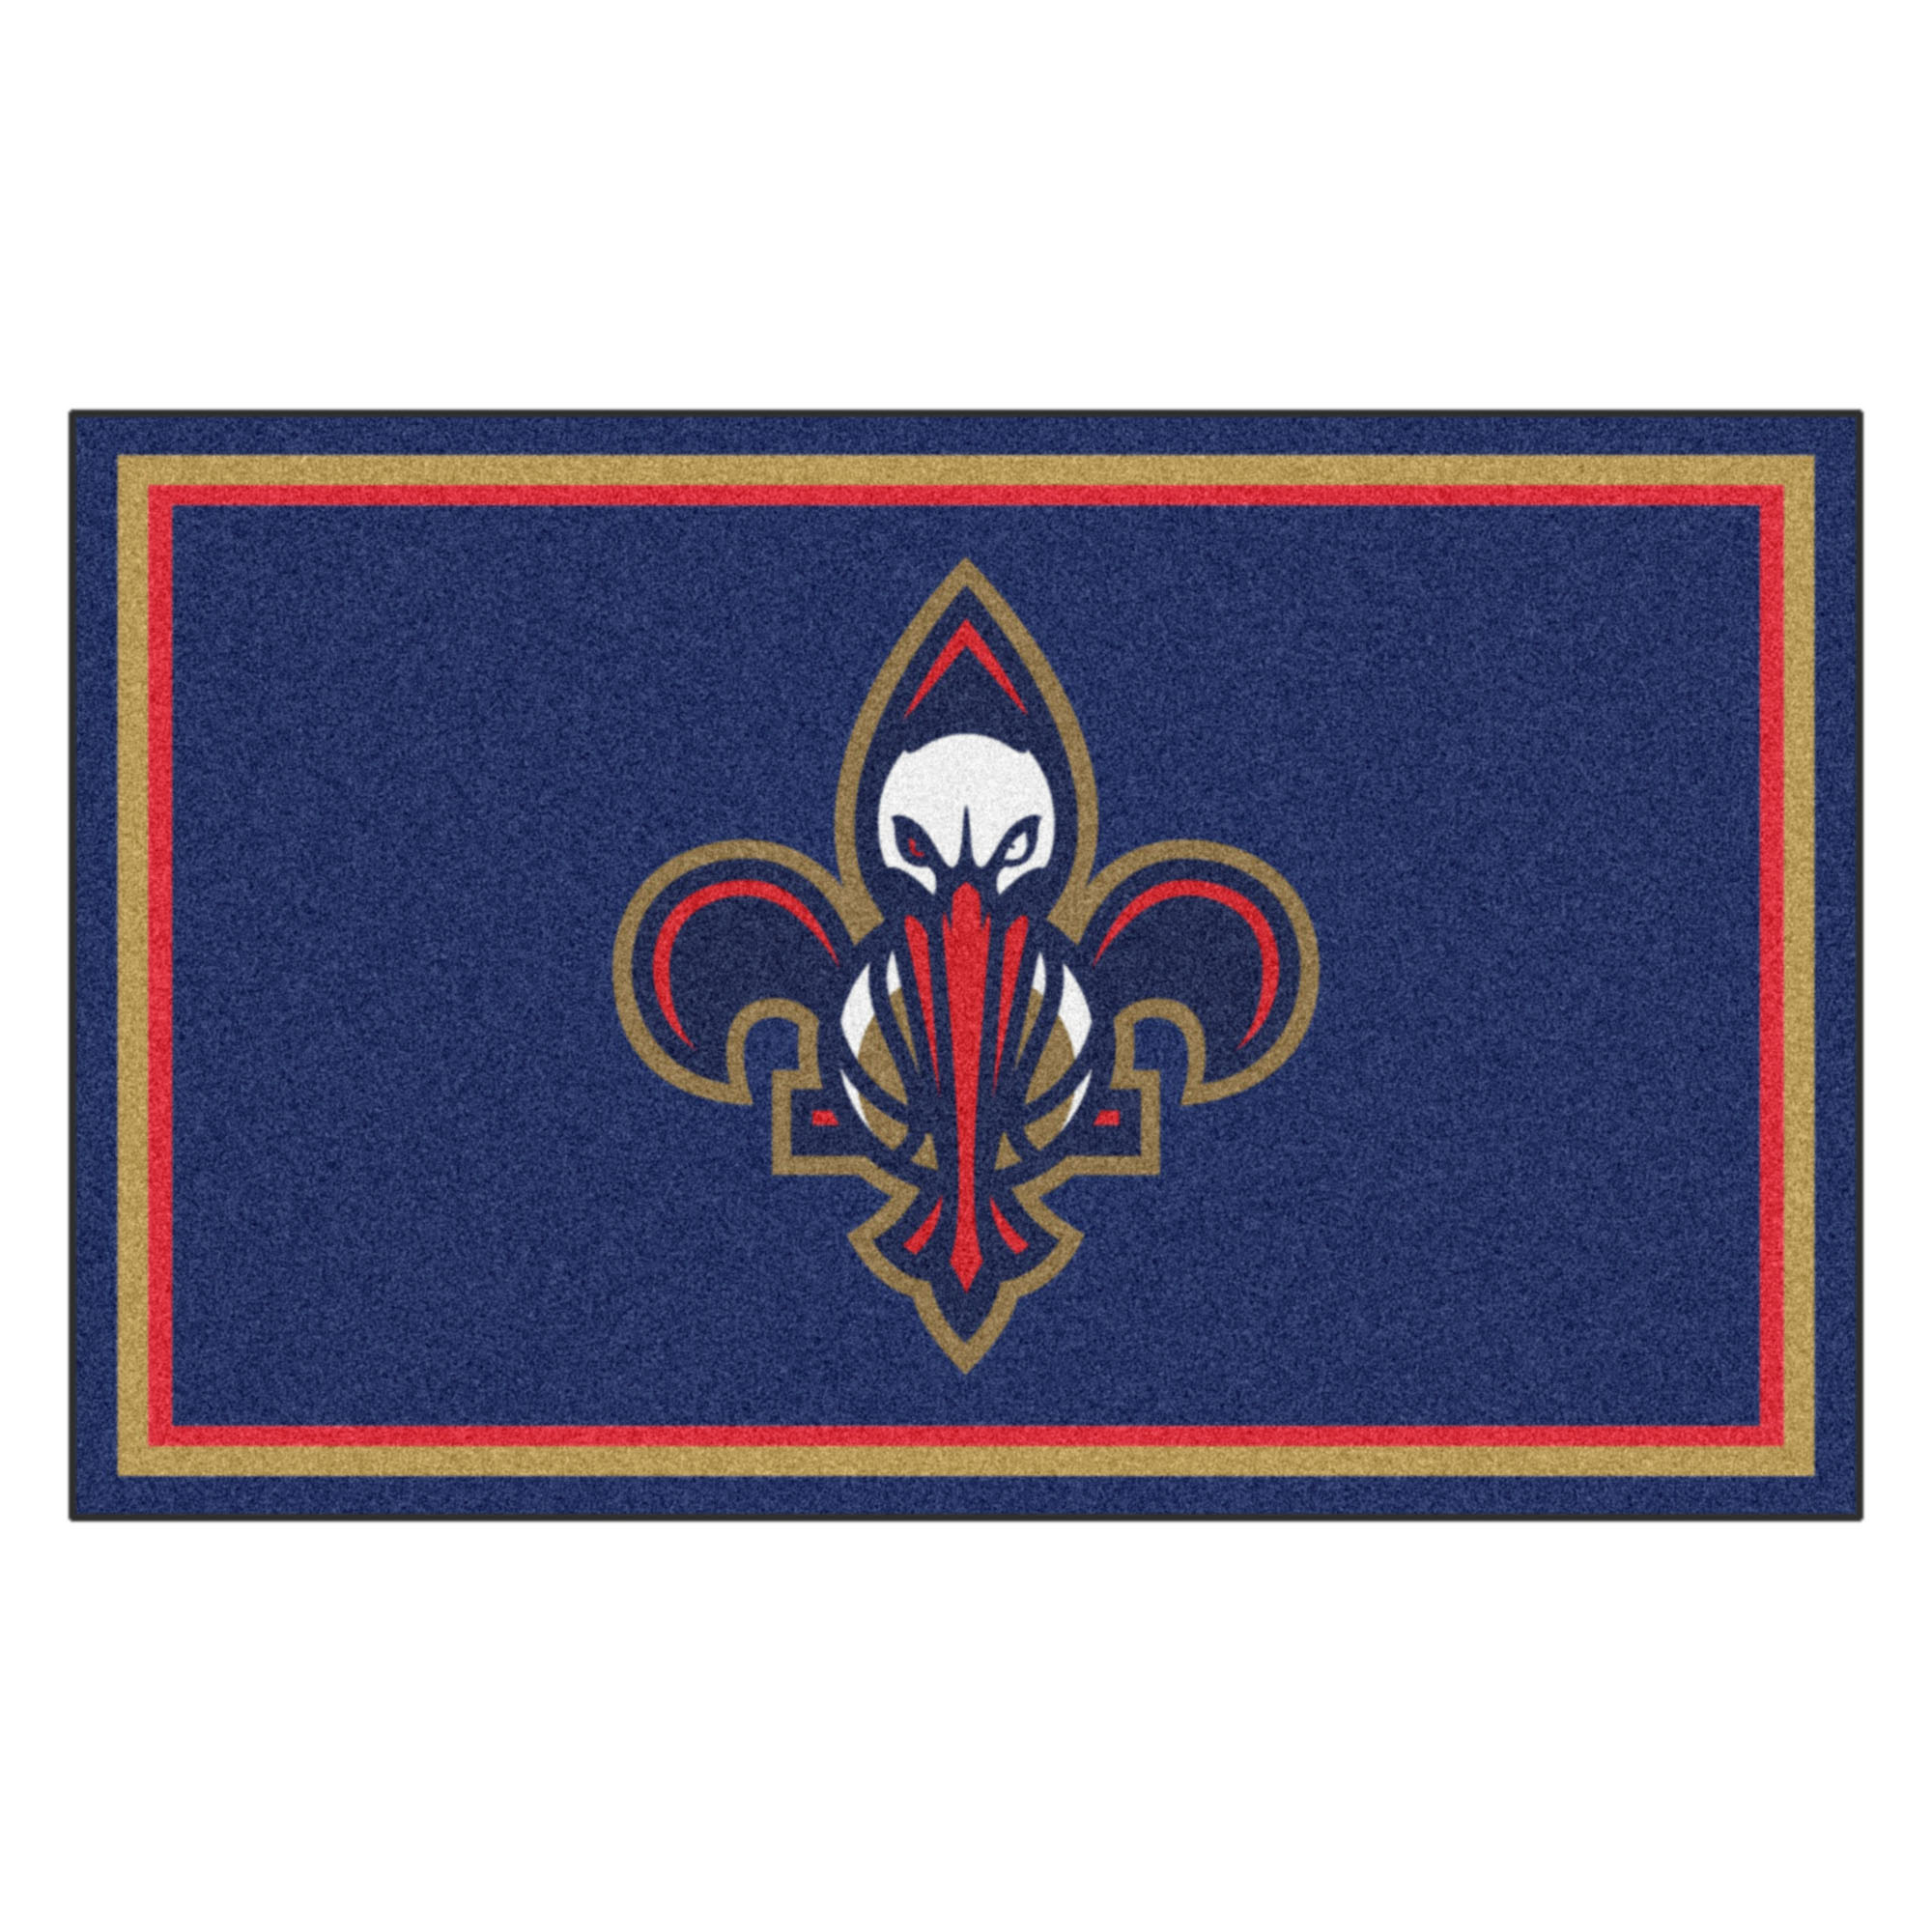 NBA New Orleans Pelicans 4 x 6 Foot Plush Non-Skid Area Rug